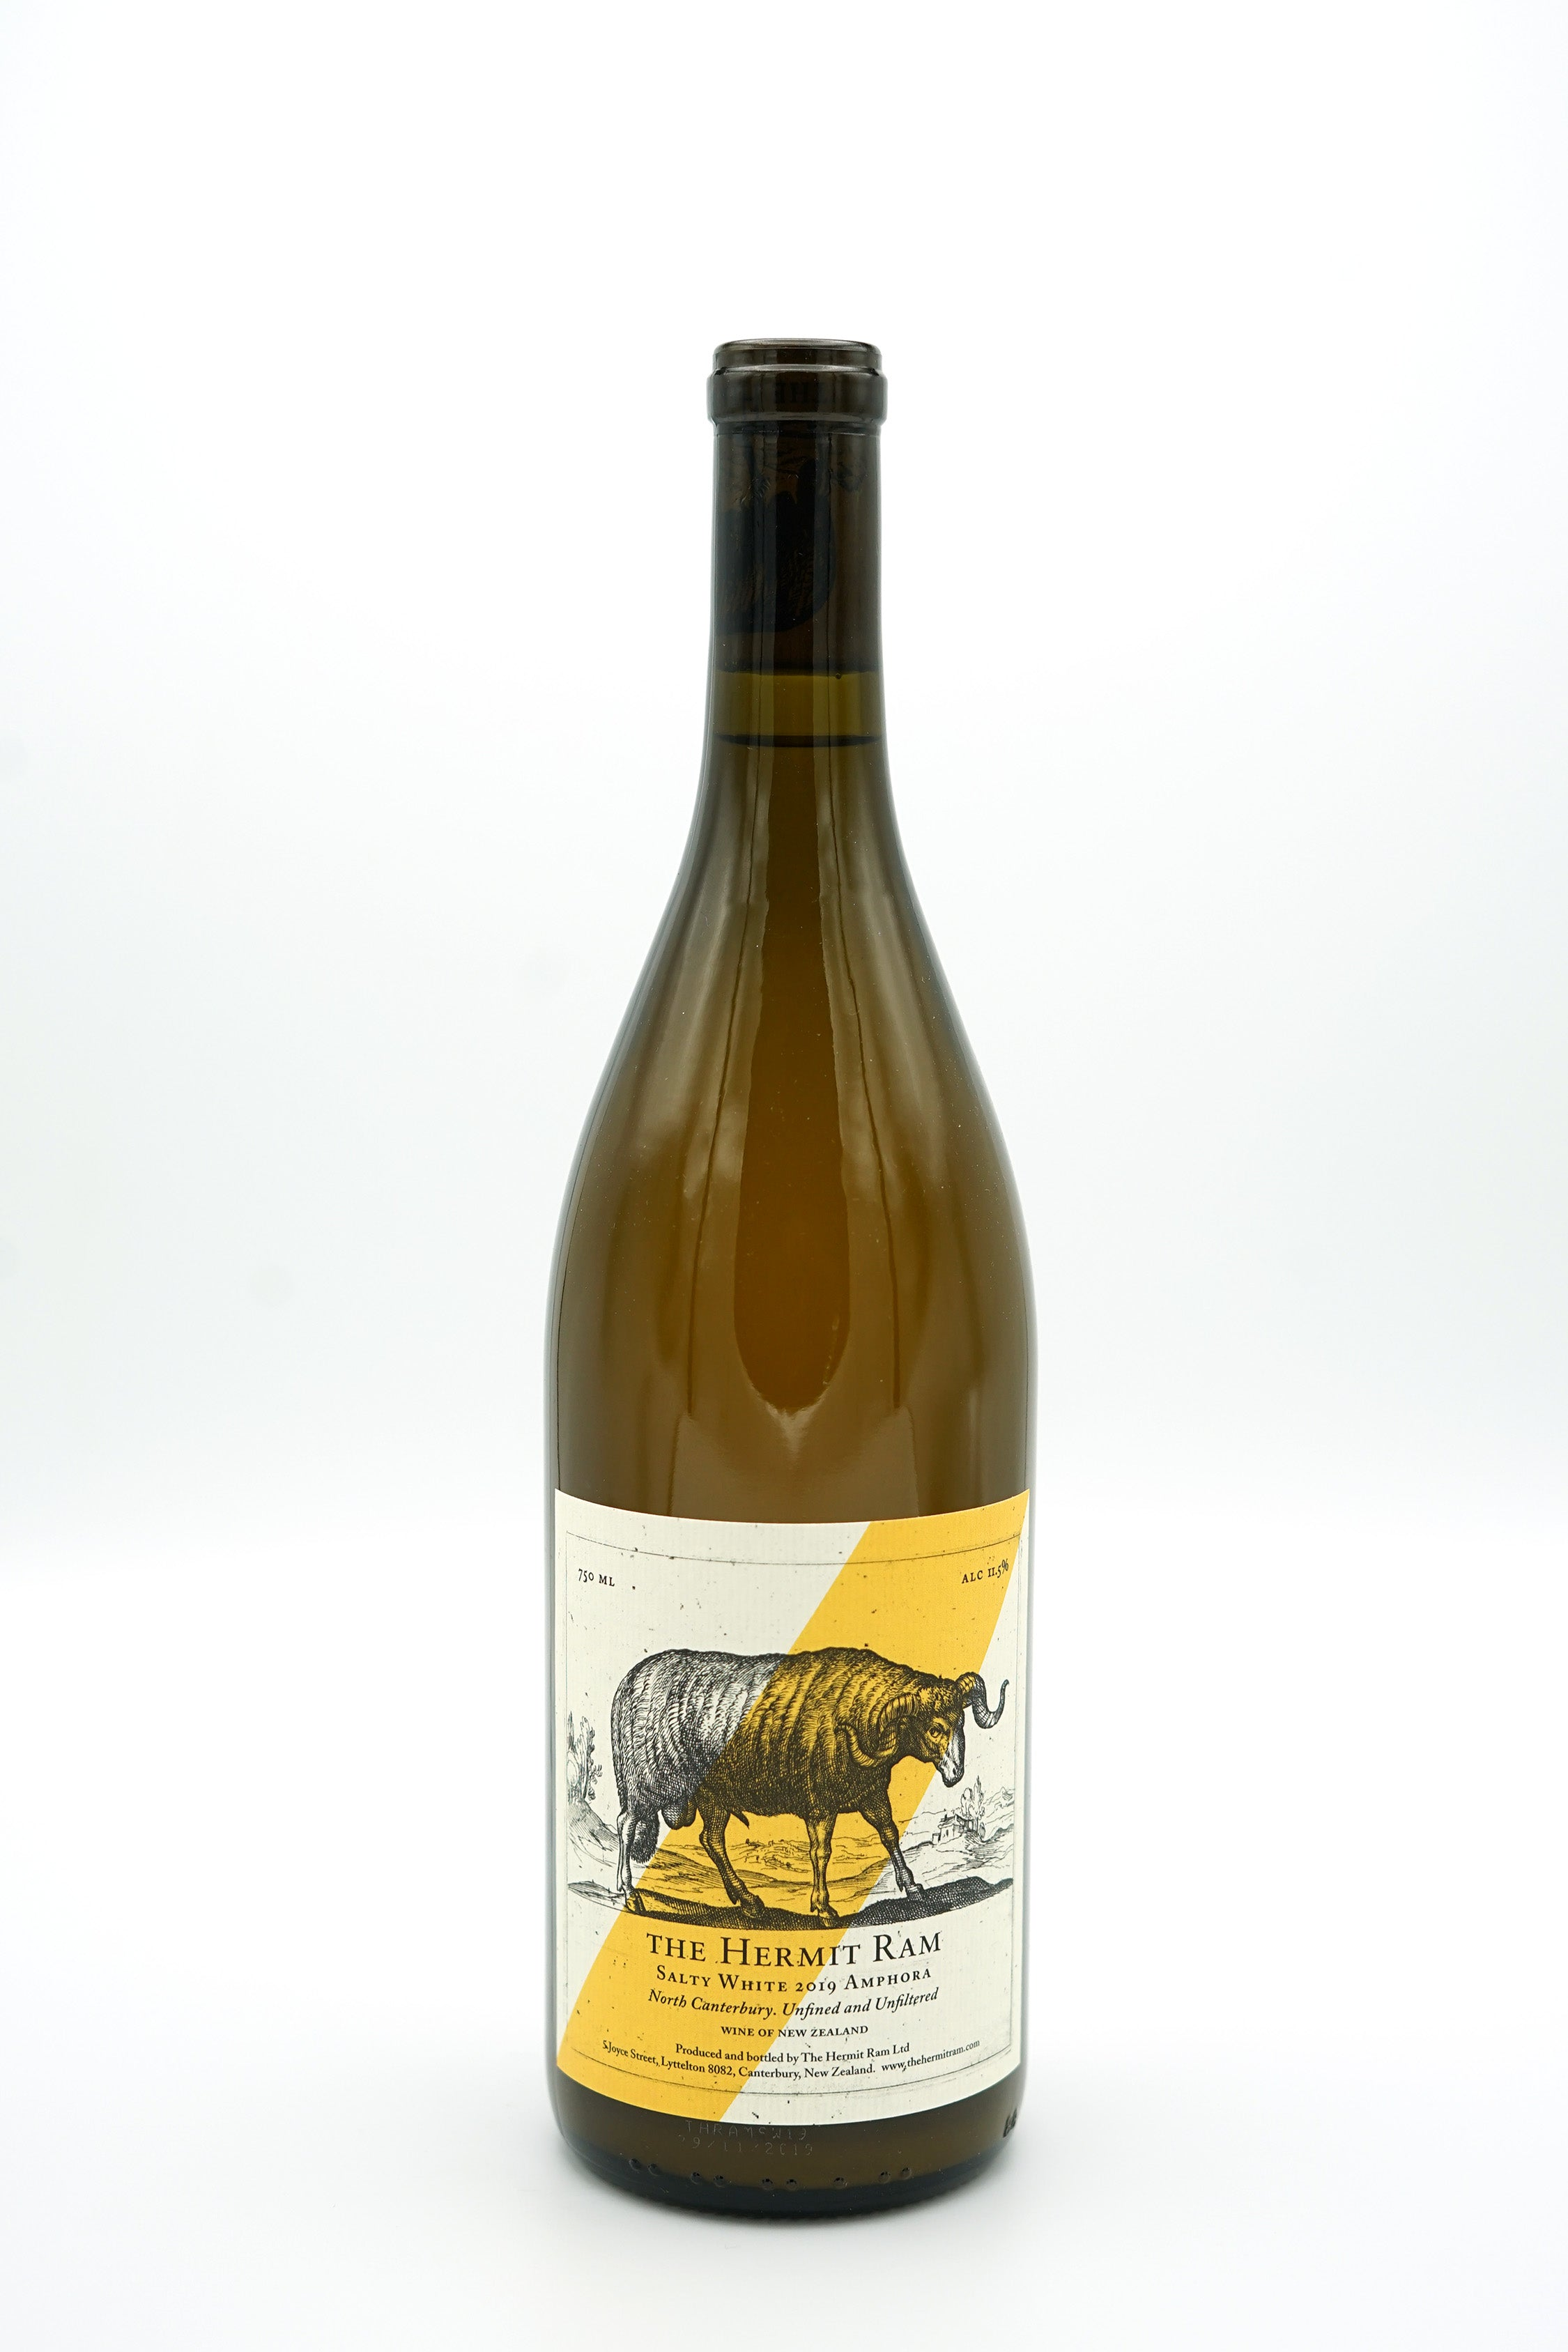 Amphora 'Salty White' 2019 - The Hermit Ram - SOLD OUT